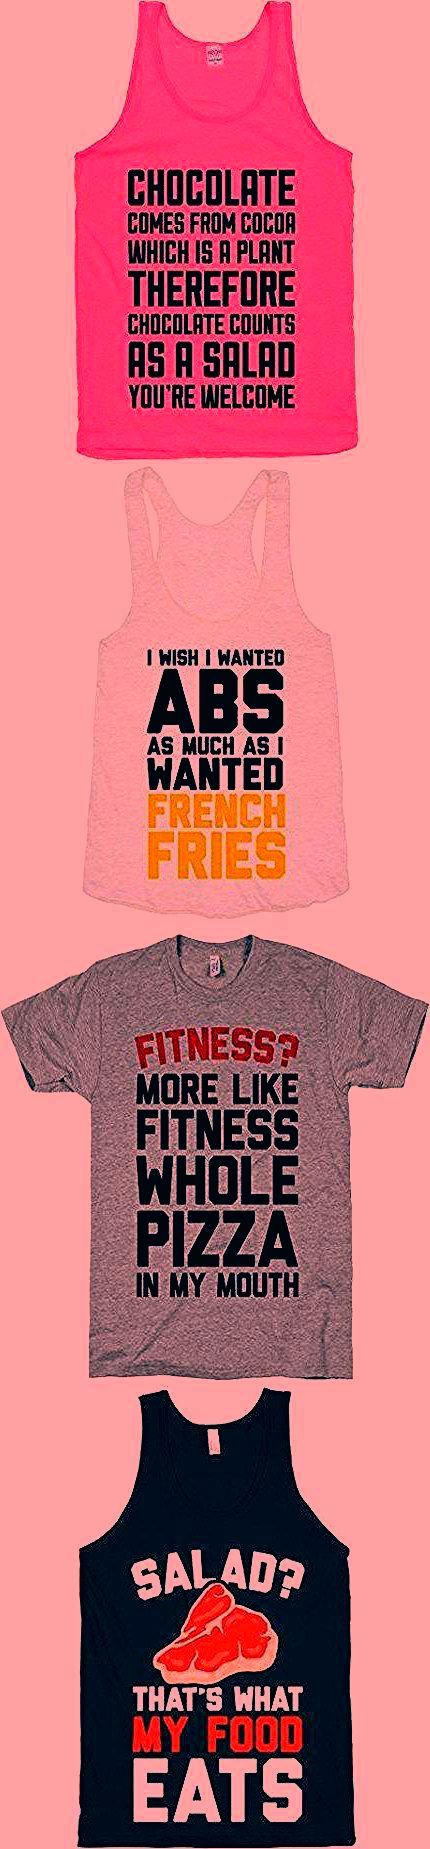 28+ Super Ideas Fitness Quotes Funny Hilarious Tanks #funny #quotes #fitness